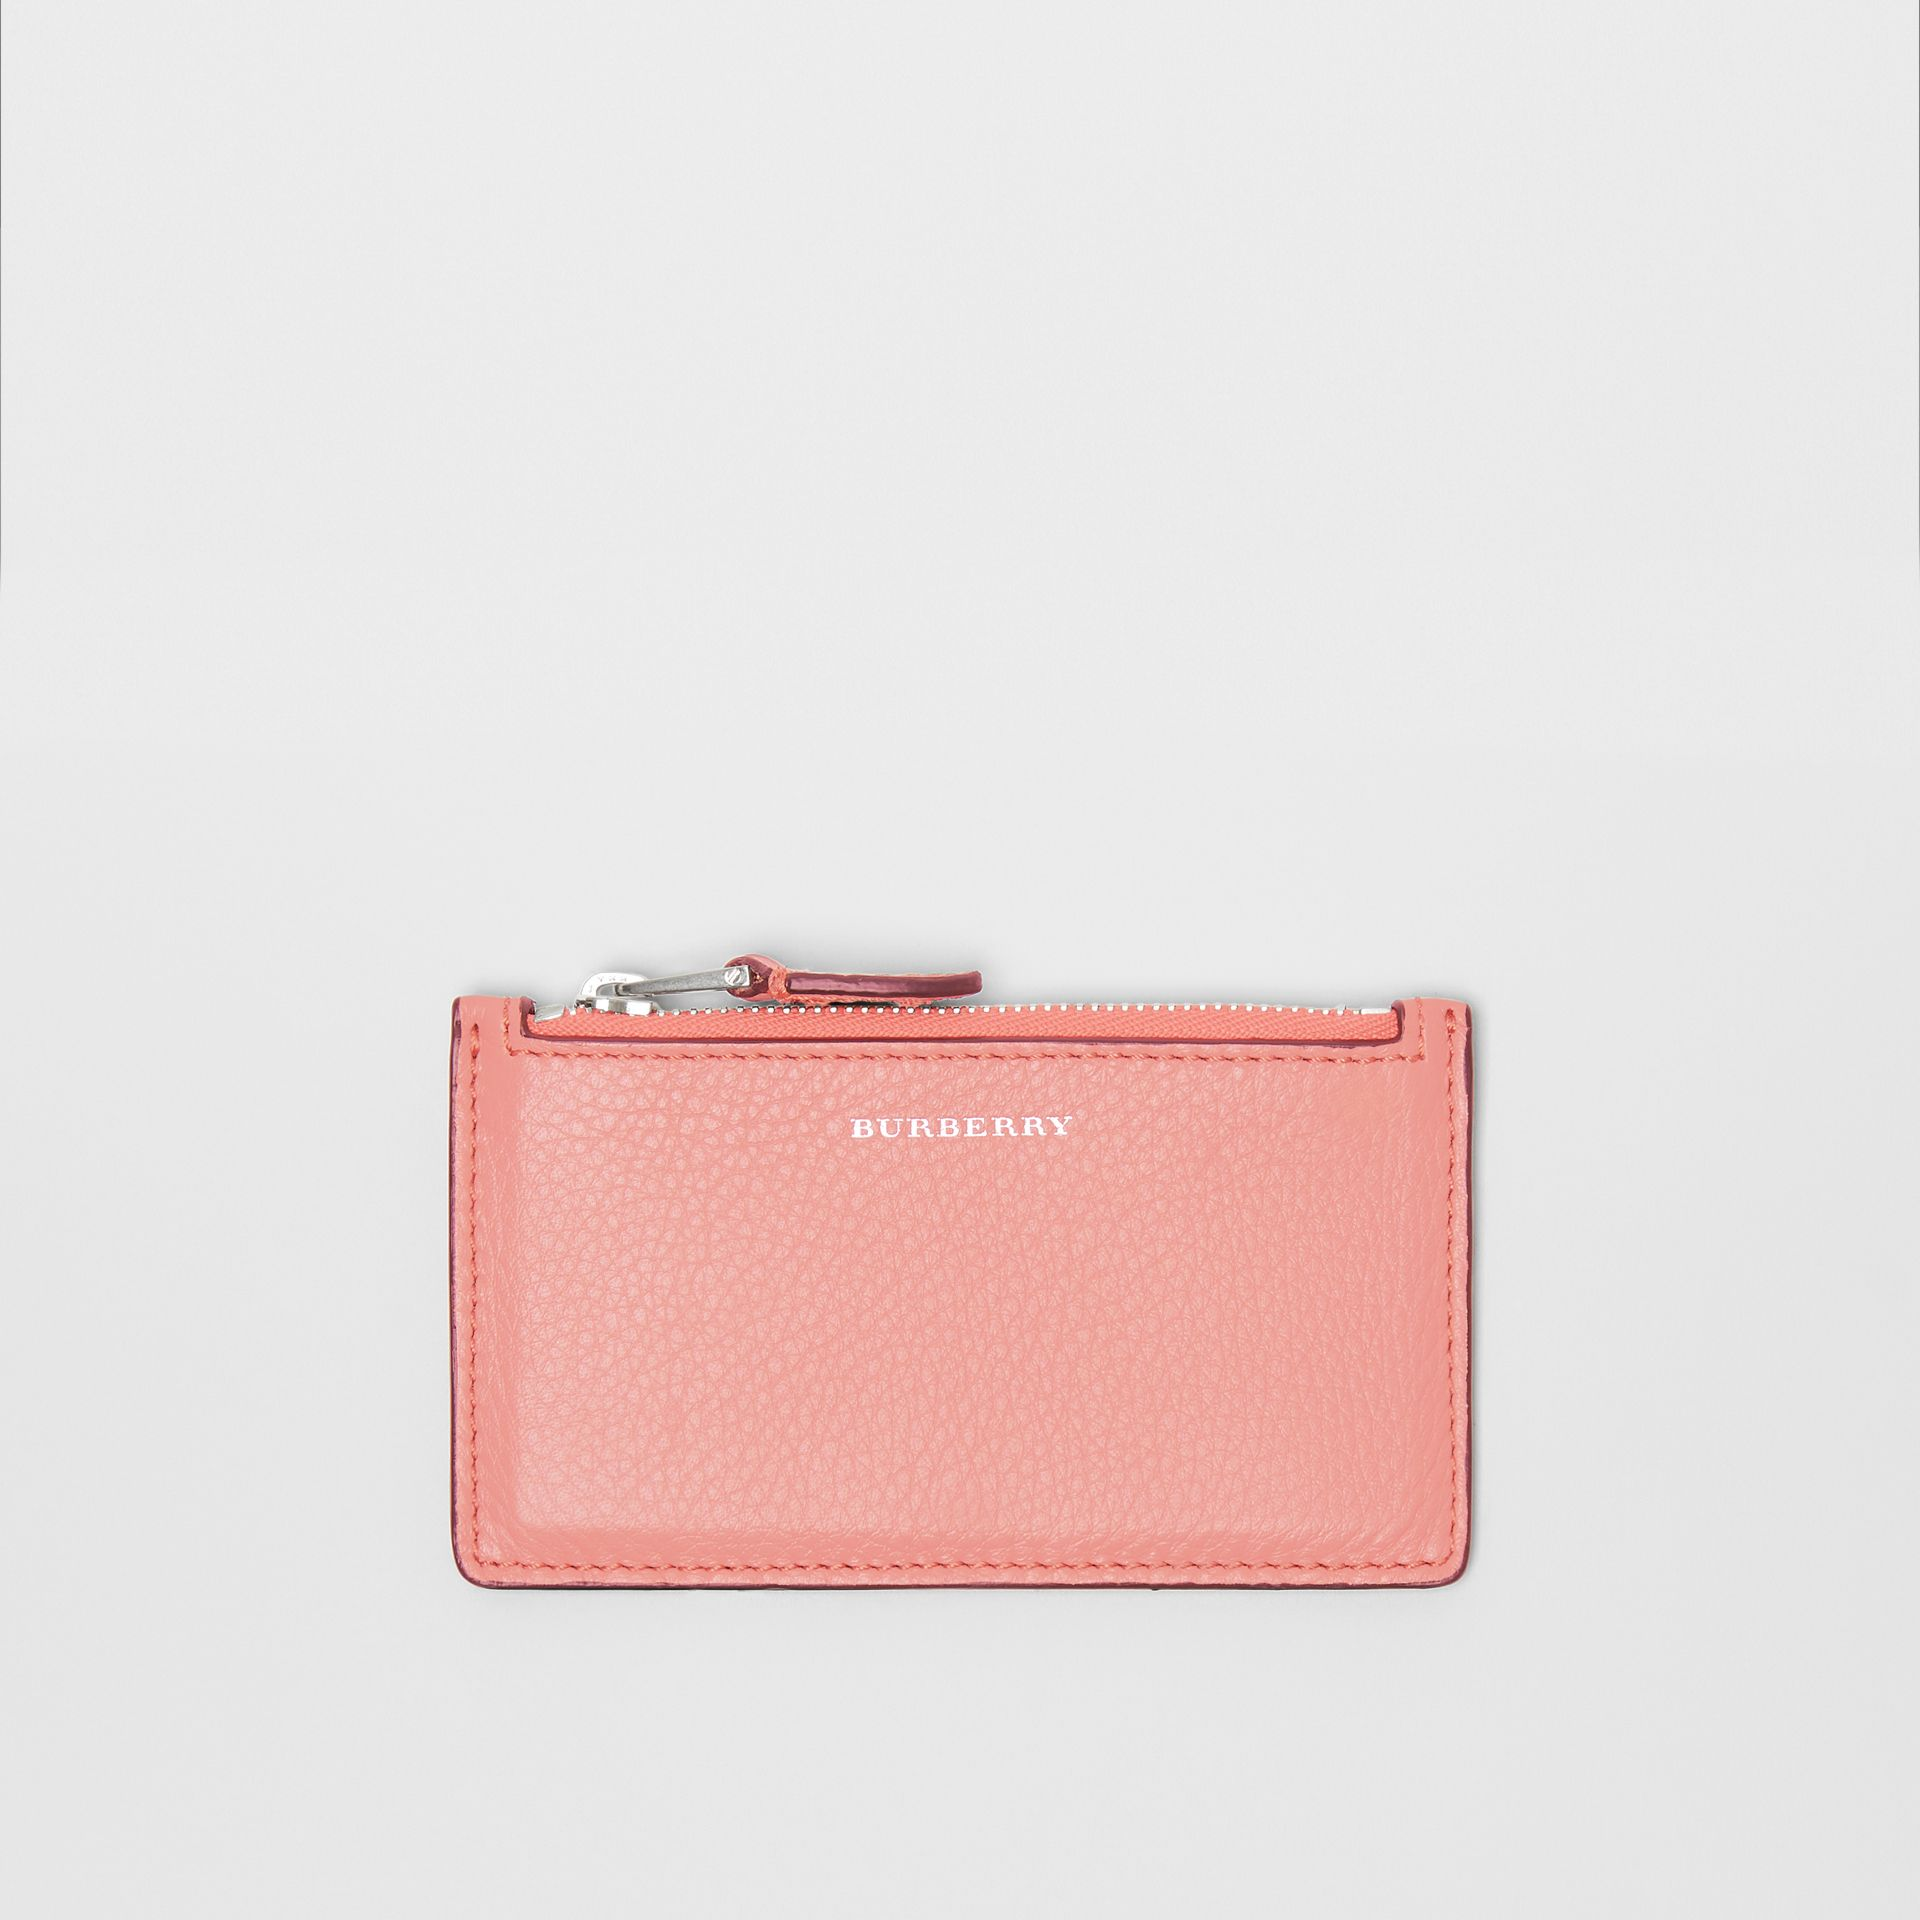 Two-tone Leather Zip Card Case in Dusty Rose - Women | Burberry United States - gallery image 0